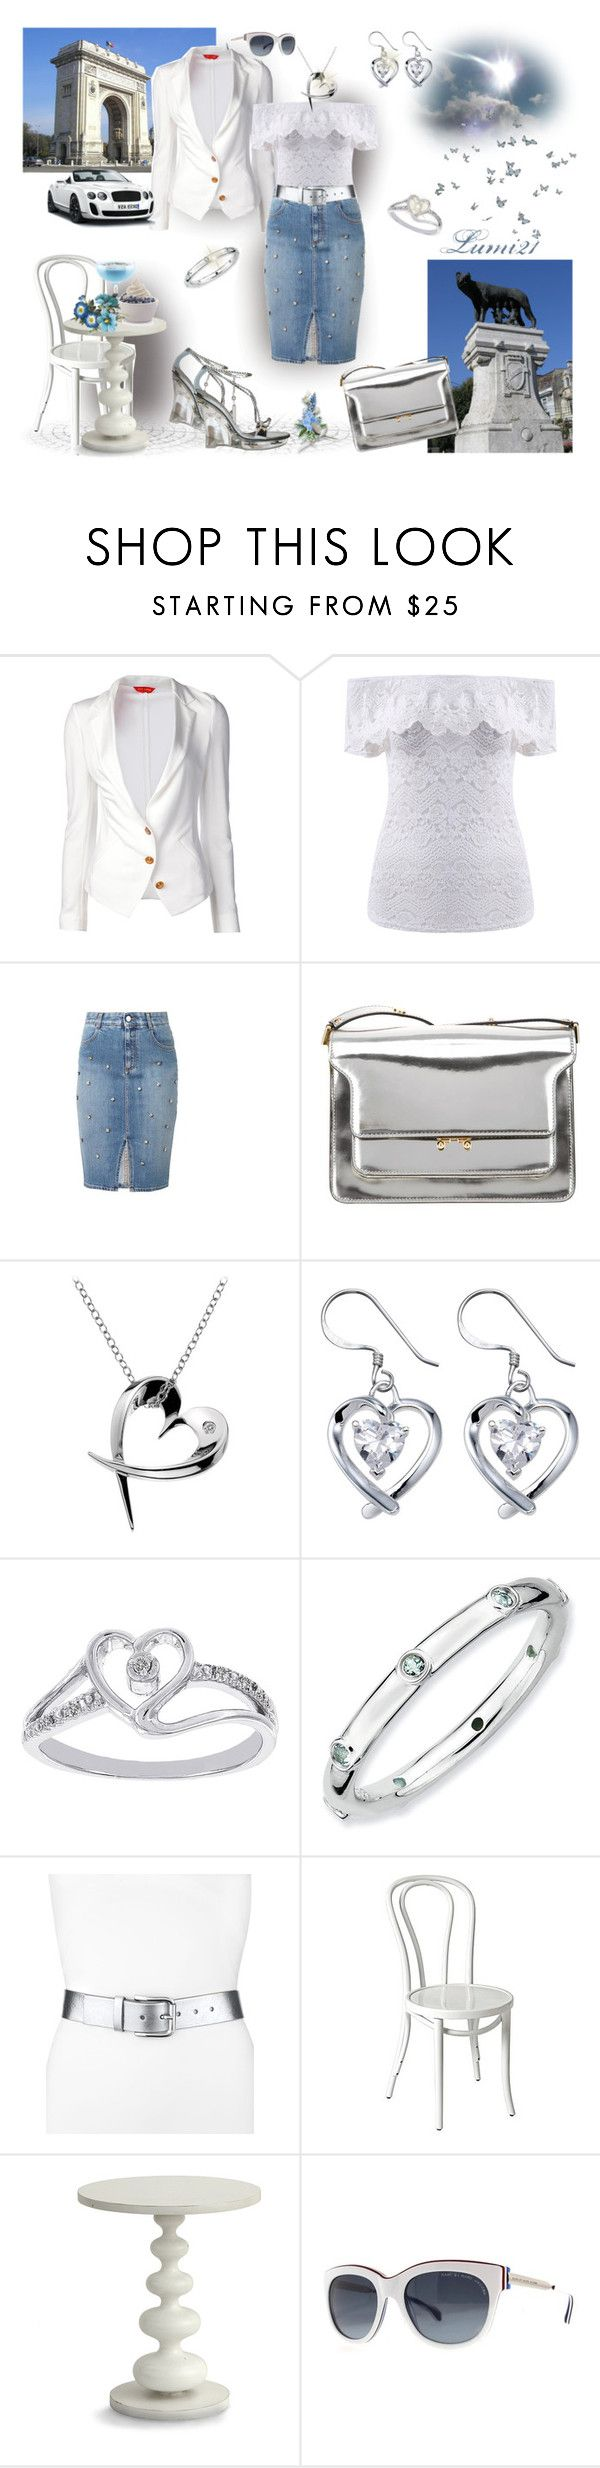 """a walk in Bucharest!"" by lumi-21 ❤ liked on Polyvore featuring Vivienne Westwood Red Label, STELLA McCARTNEY, Azzaro, Marni, Hot Diamonds, Modern Bride, Expressions, Neiman Marcus, Redford House and Disney"